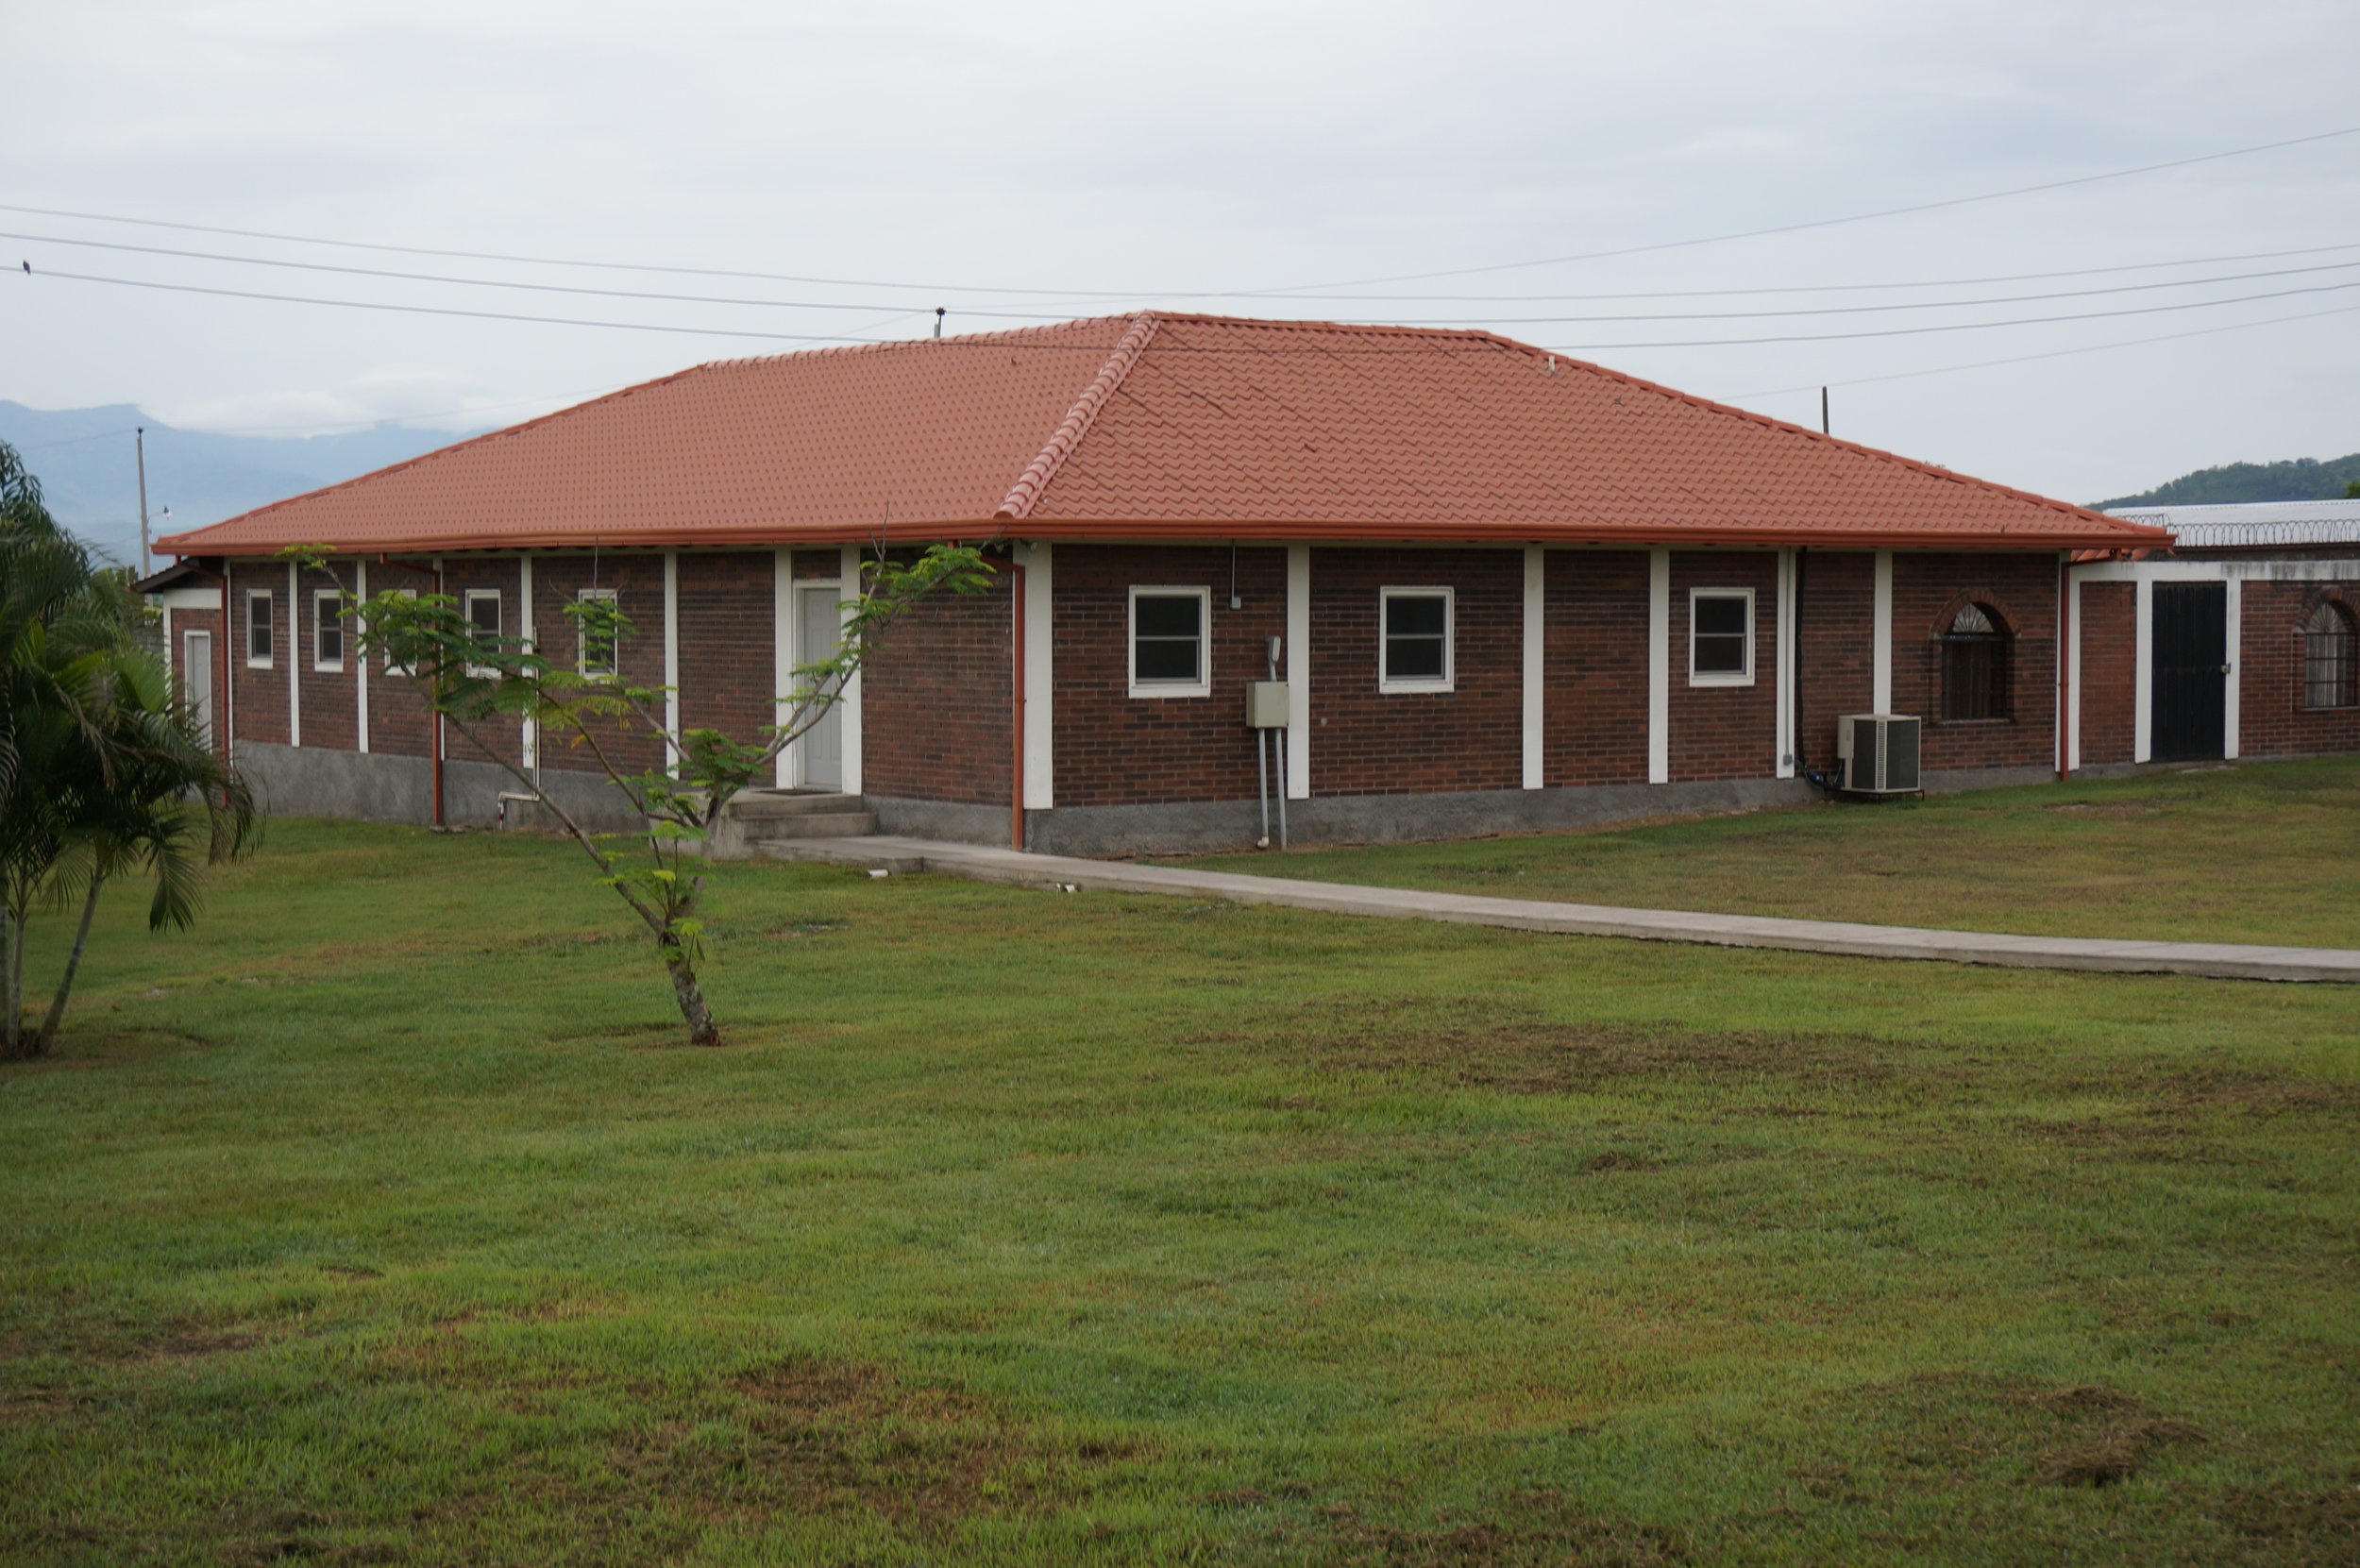 Clinic Building